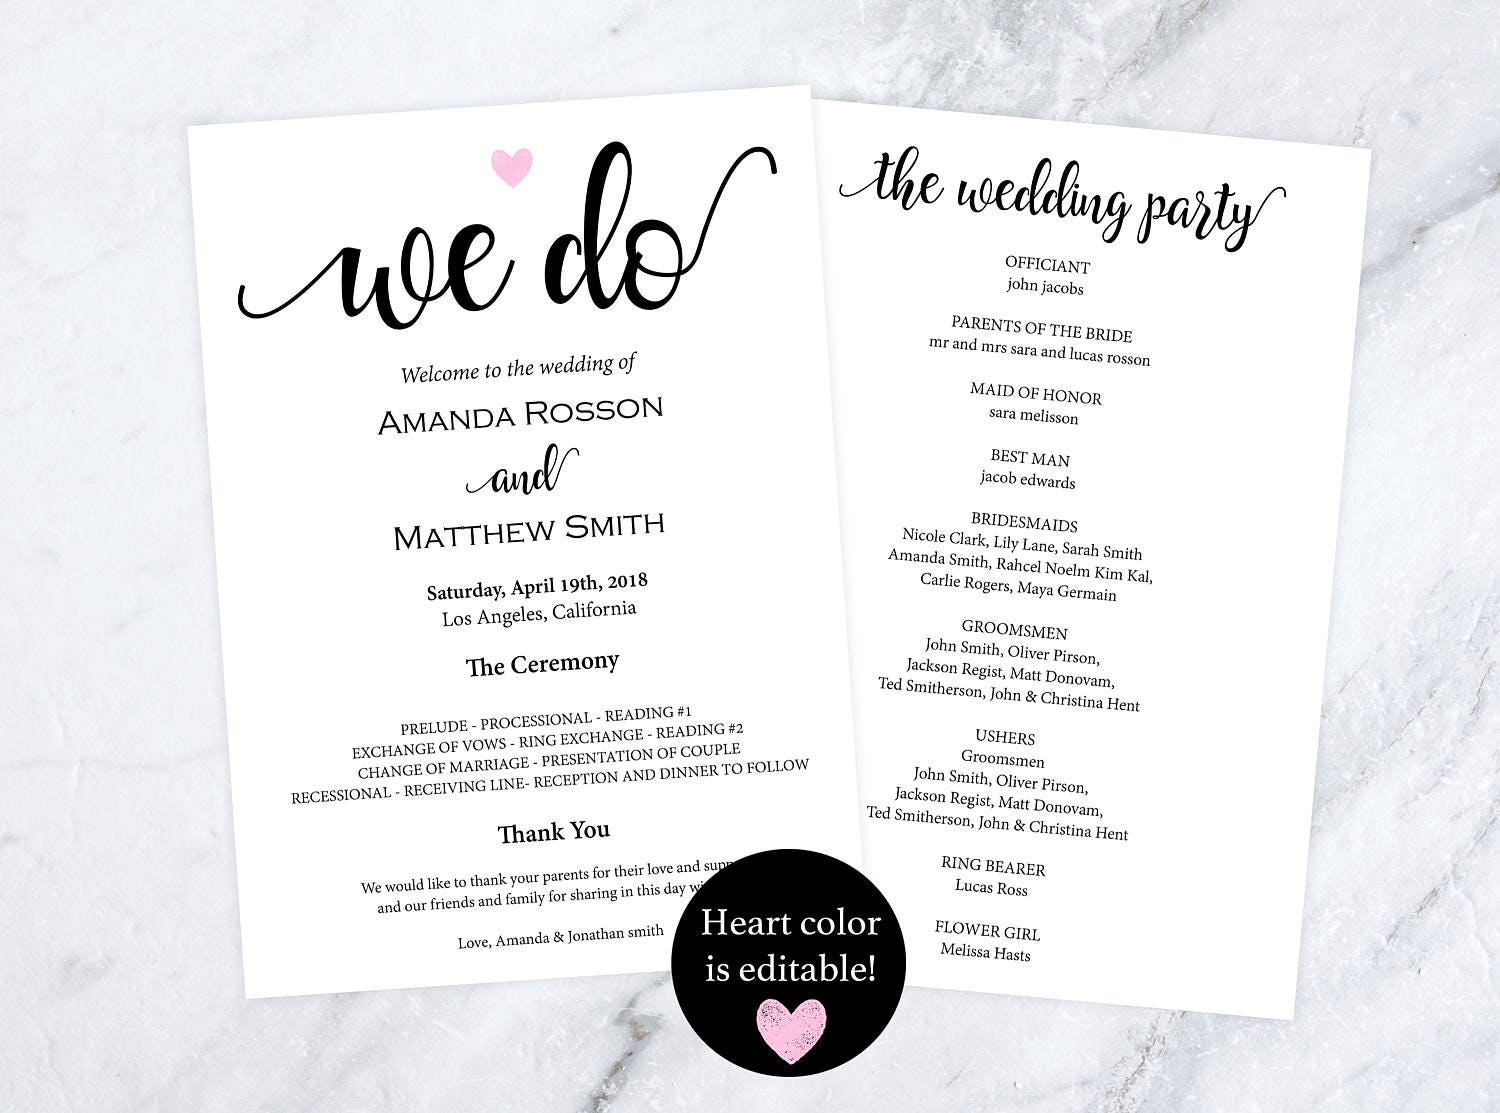 Rustic wedding programs instant download  editable heart color  we do wedding programs  wedding ceremony program template WDH812104